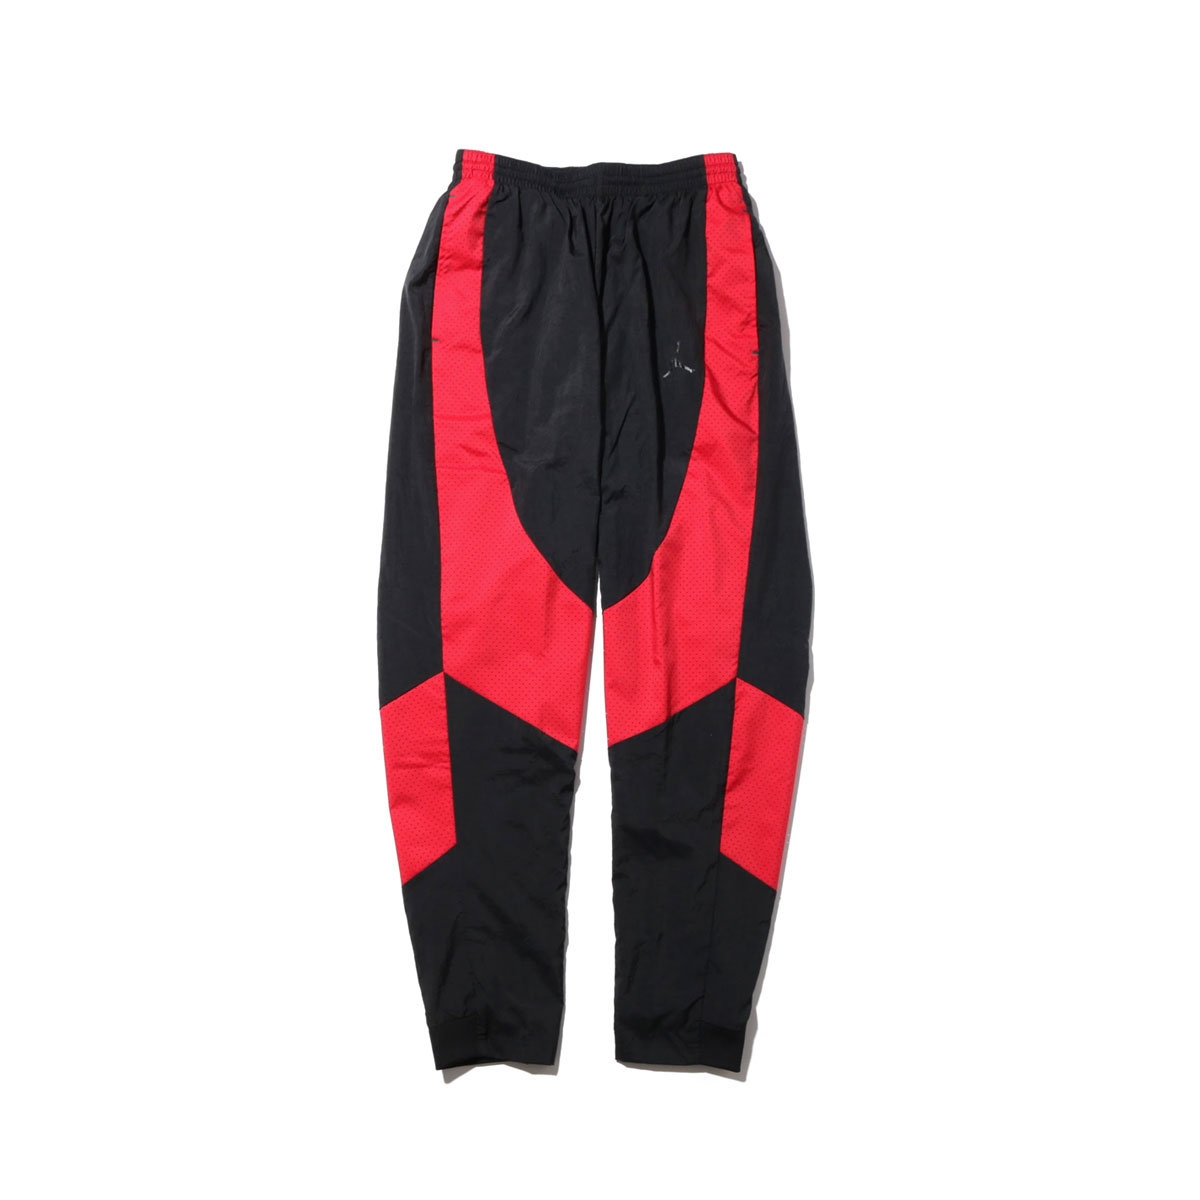 NIKE JSW WINGS MUSCLE PANT(ナイキ ジョーダン JSW WINGS マッスル パンツ)(BLACK/GYM RED/(BLACK))【メンズ】17HO-S